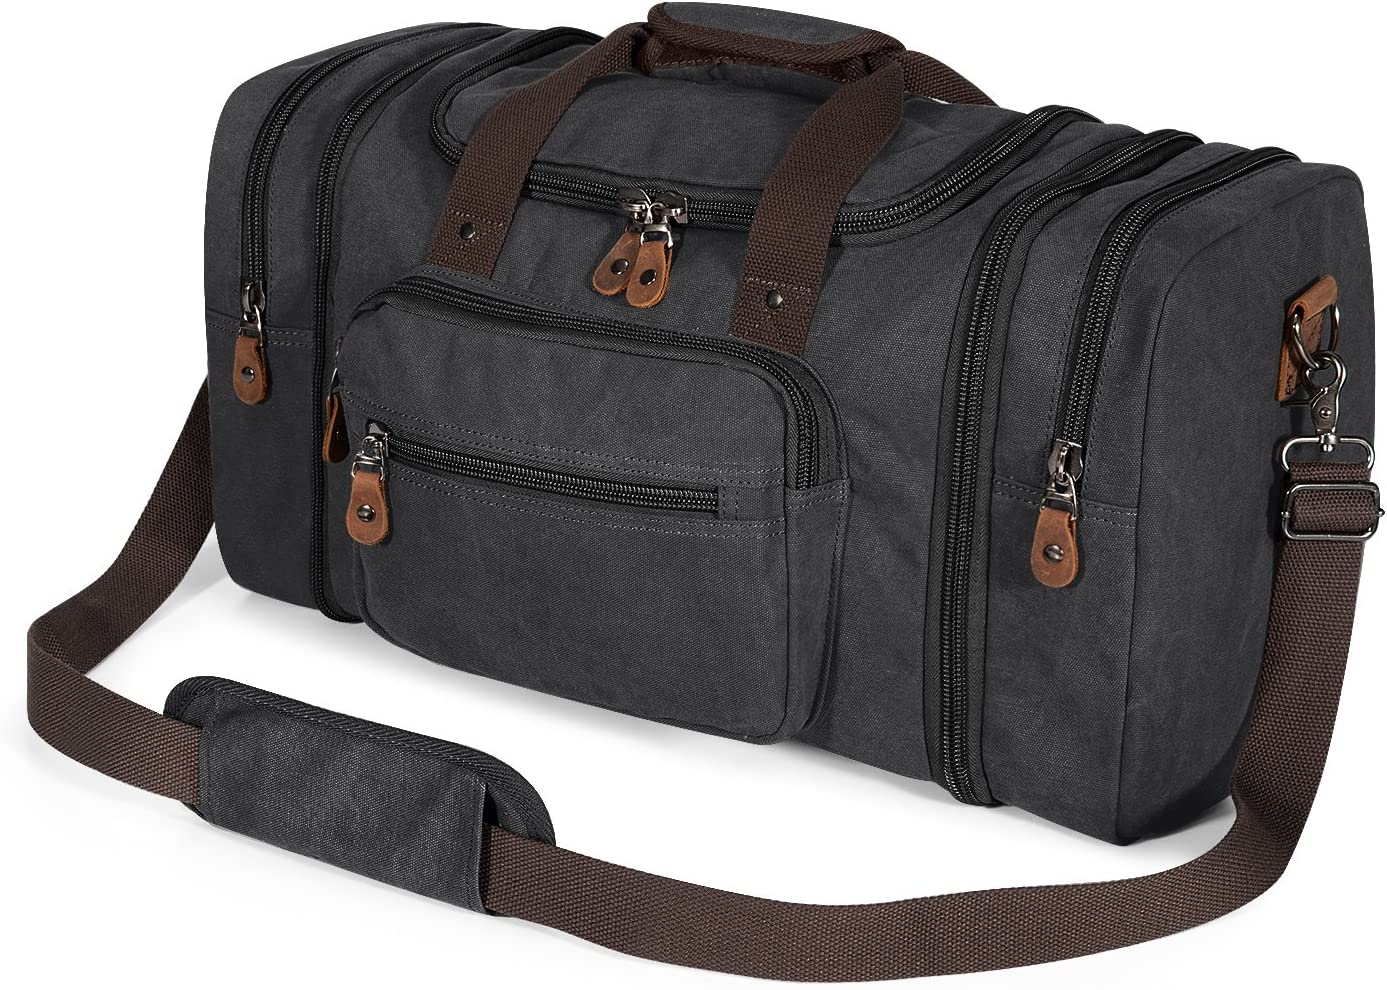 Plambag Canvas Duffle Bag for Travel, Oversized Duffel Overnight Weekend Bag Dark Gray